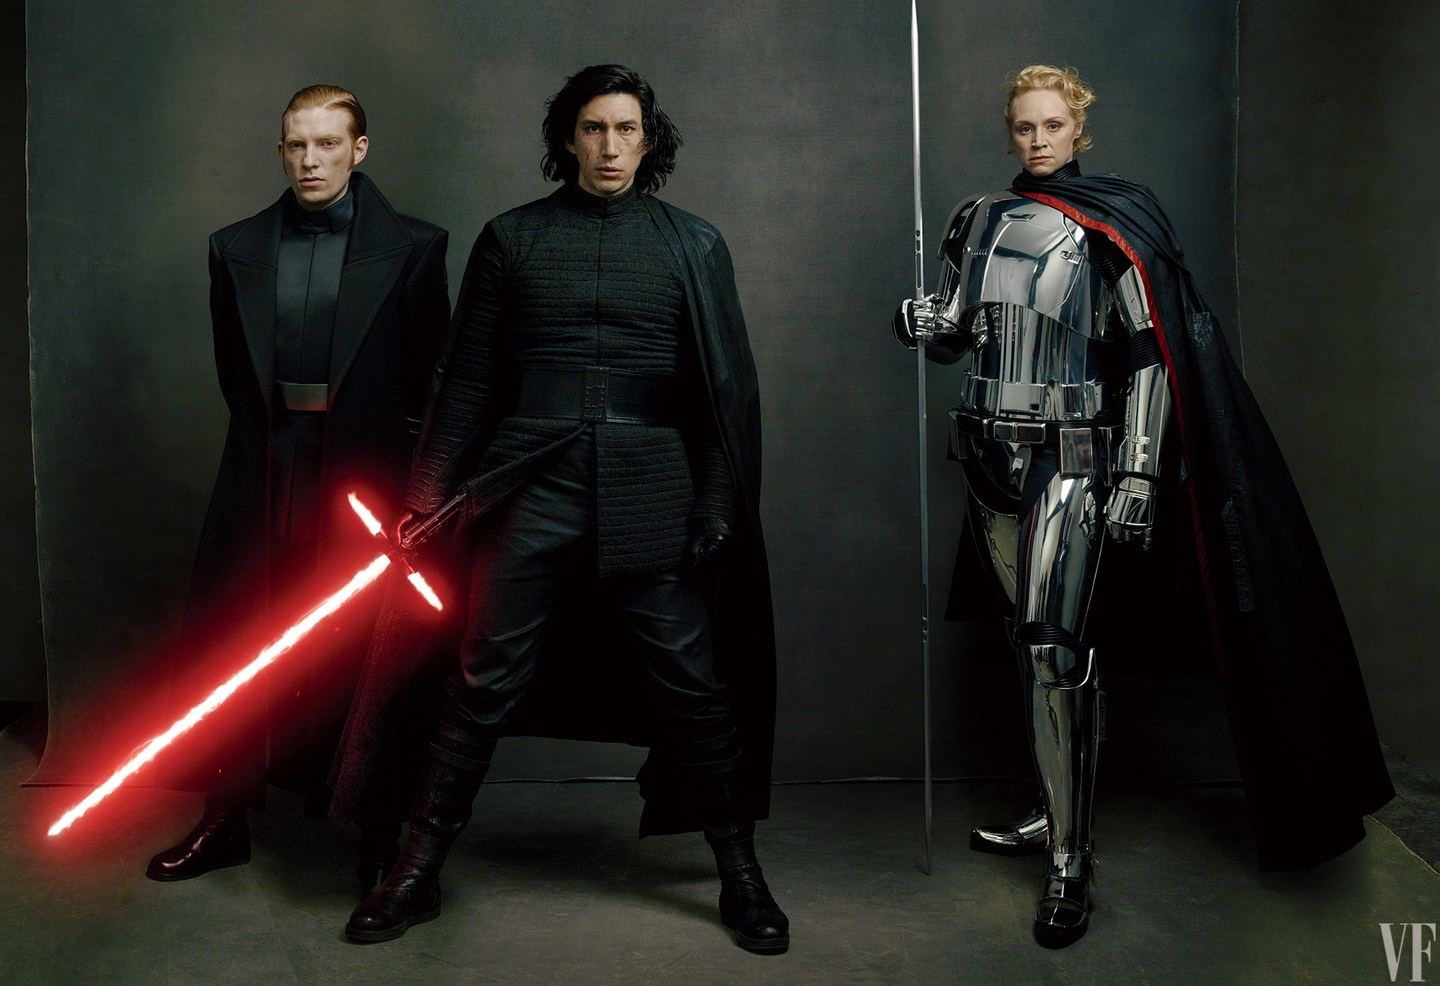 Star-Wars-The-Last-Jedi-villains.jpg